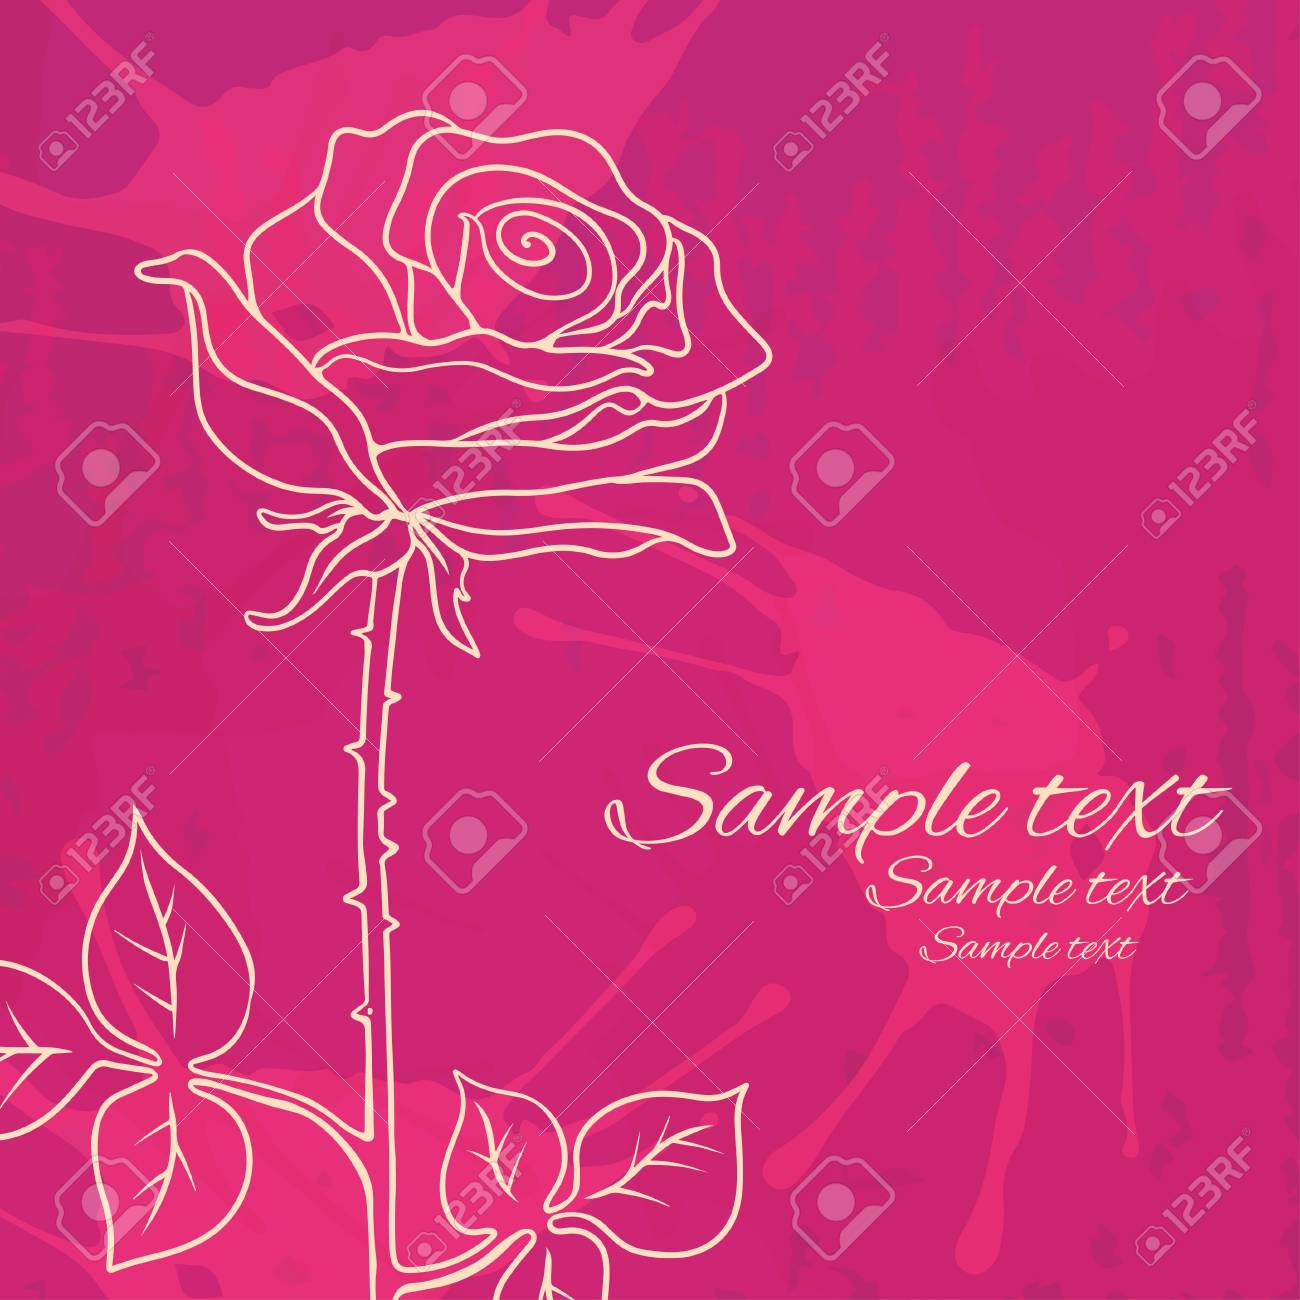 Vintage floral background with roses Stock Vector - 19317352